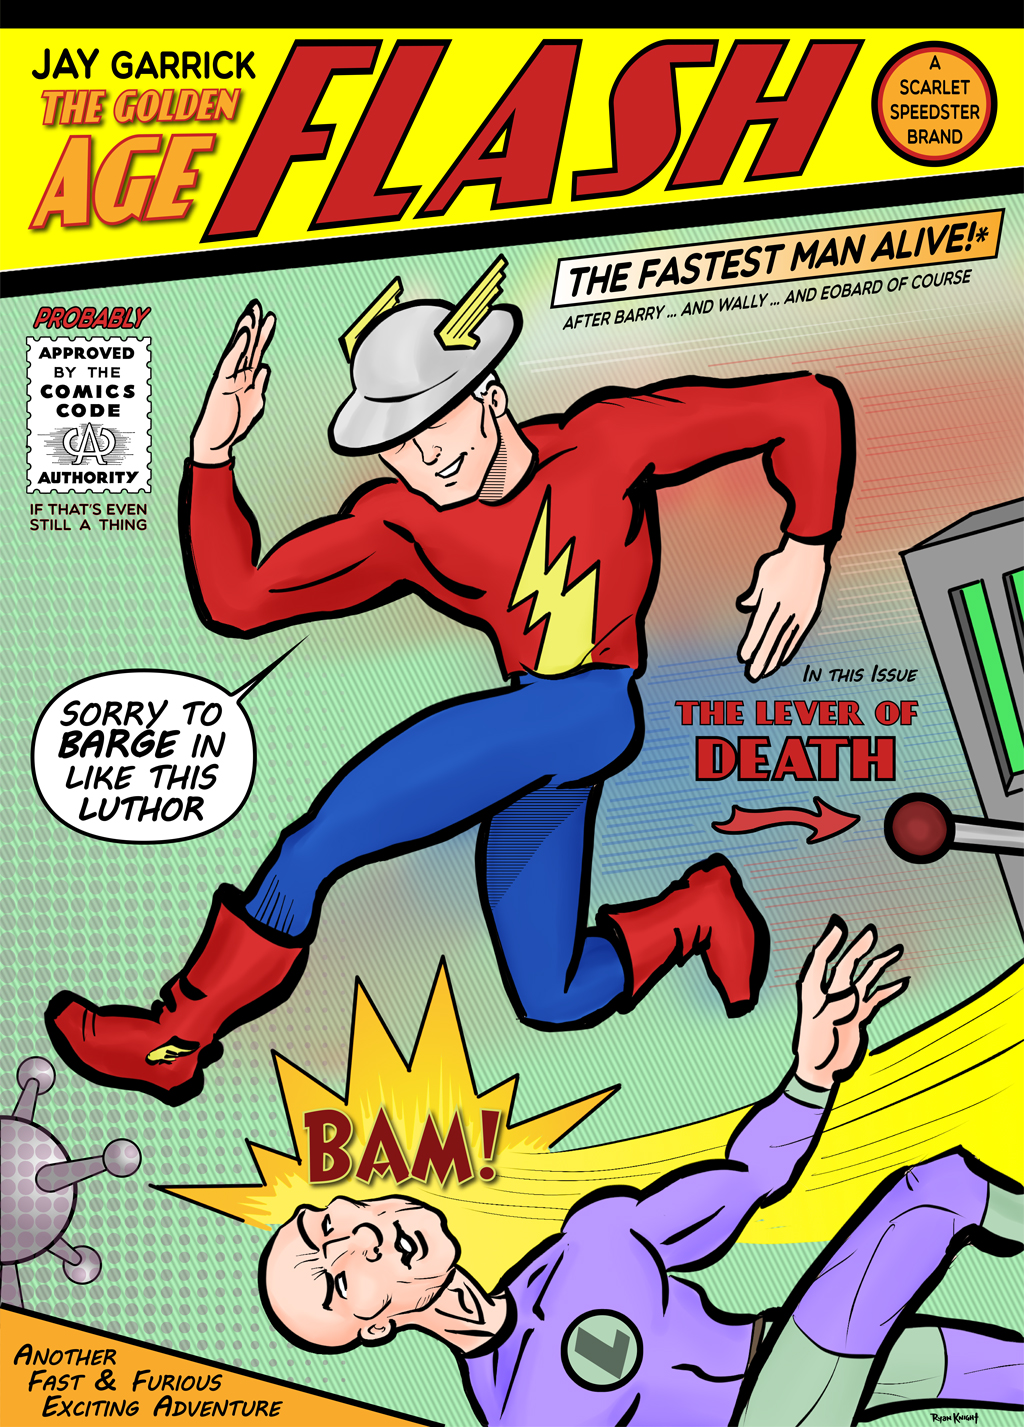 Jay Garrick: The Golden Age Flash - The Fastest Man Alive*